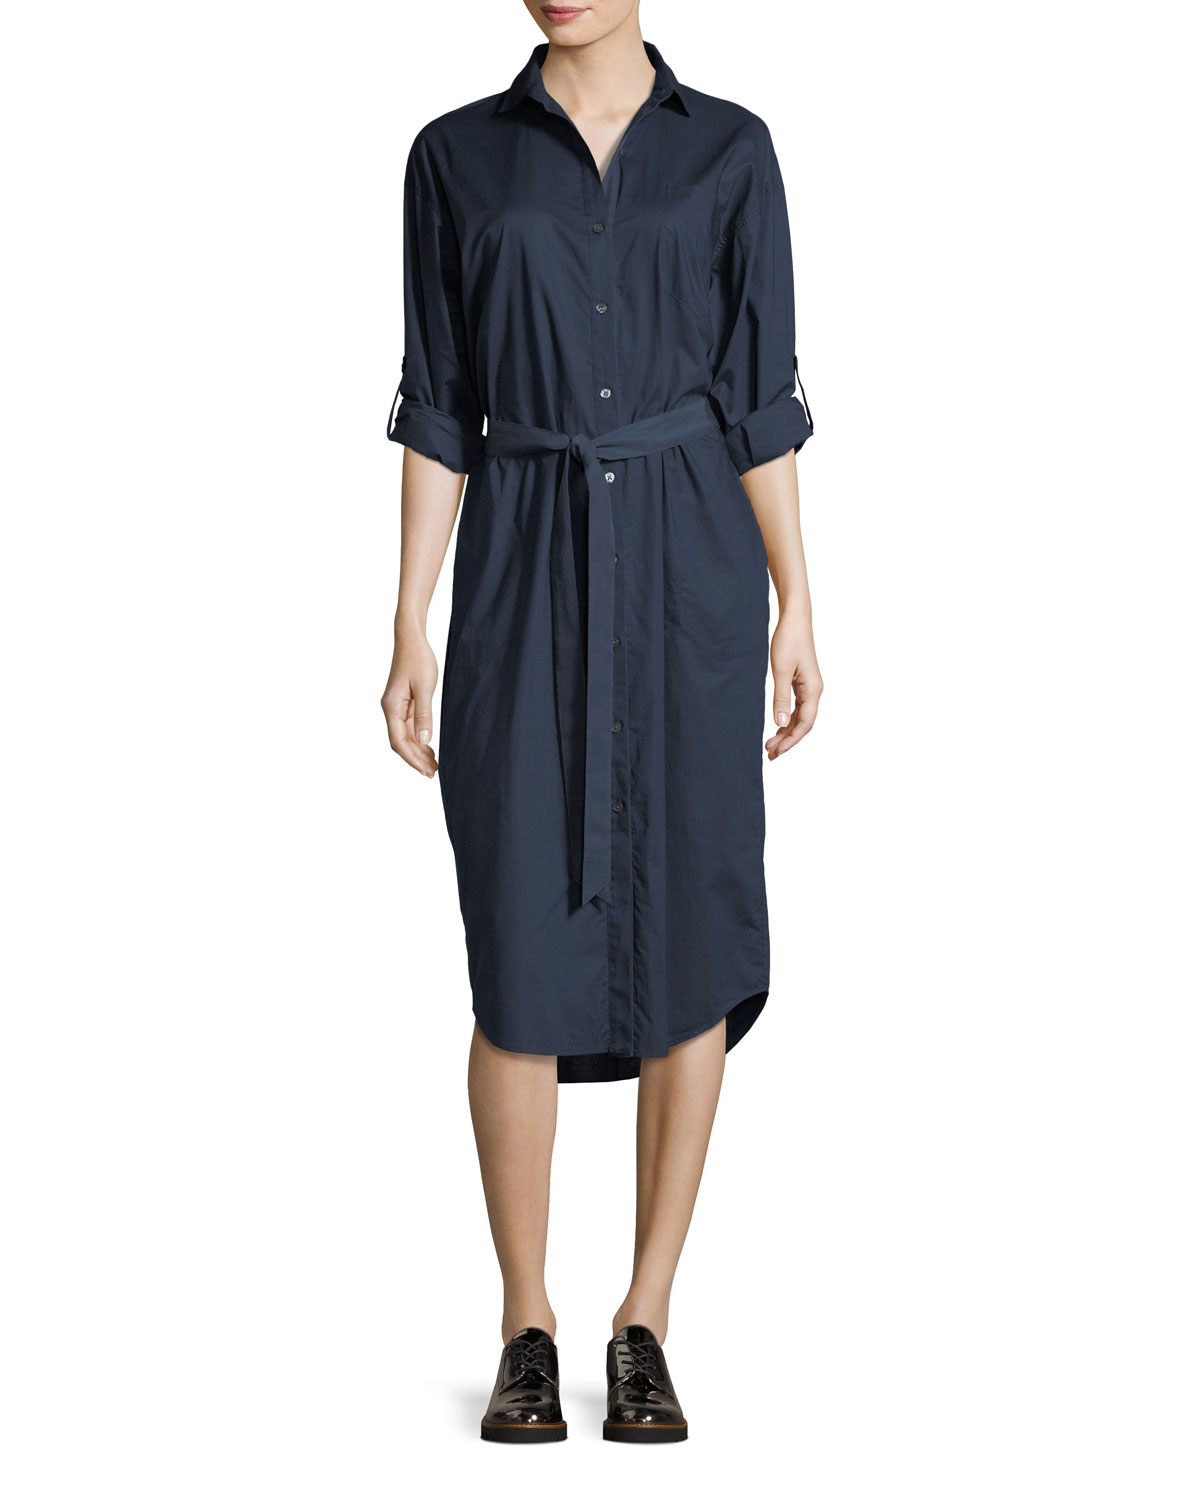 Atm Anthony Thomas Melillo Tie Waist Cotton Poplin Shirtdress